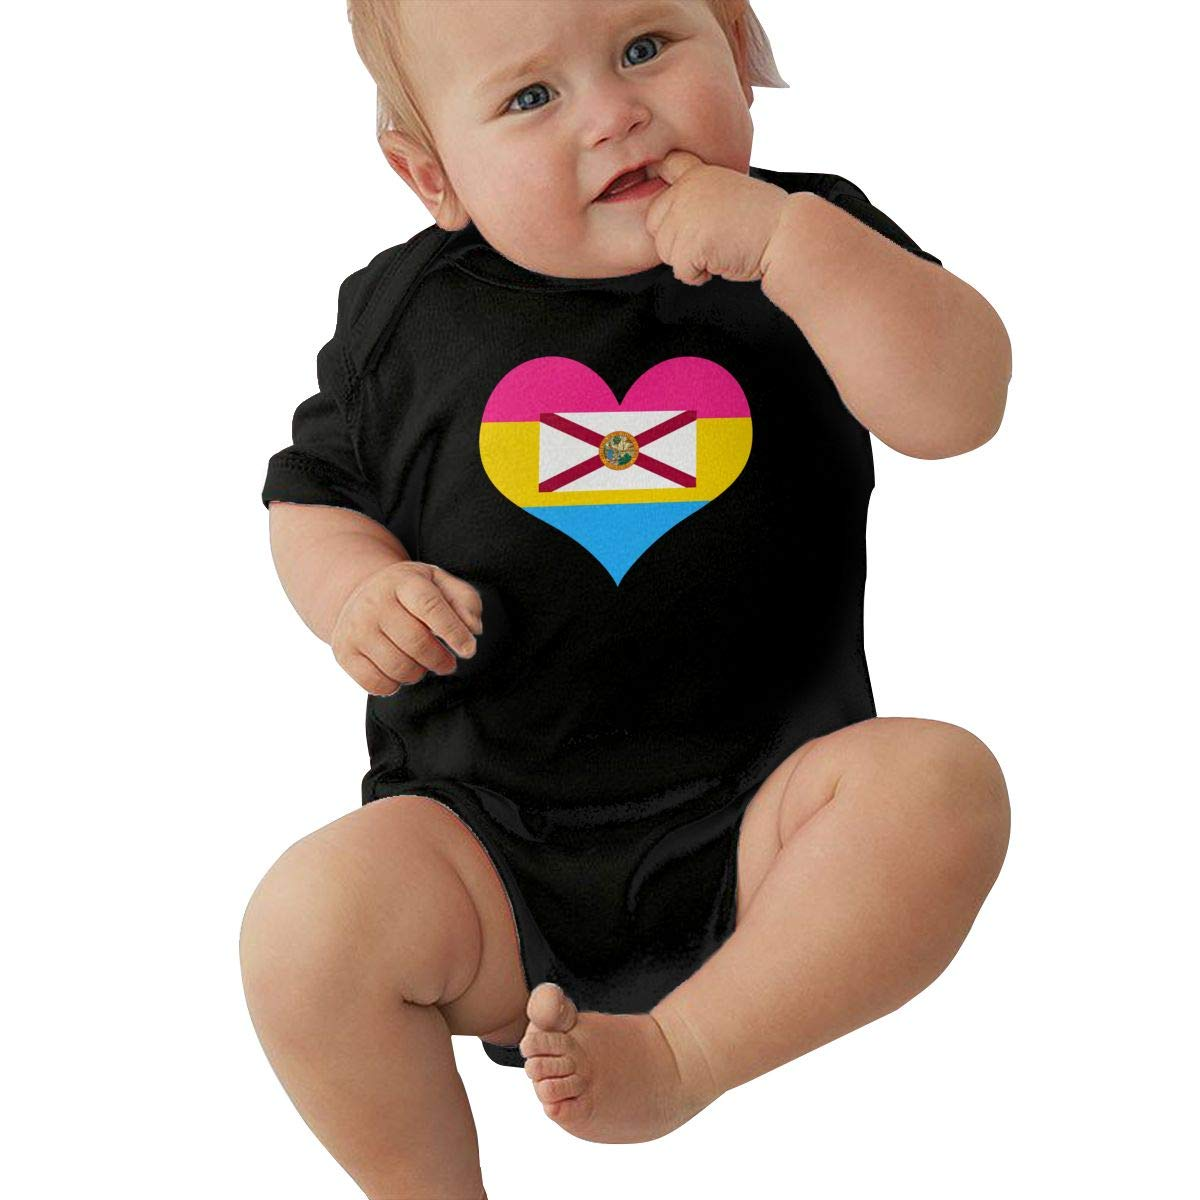 TAOHJS97 Toddler Pansexual Heart Florida Flag Short Sleeve Climbing Clothes Bodysuits Suit 6-24 Months